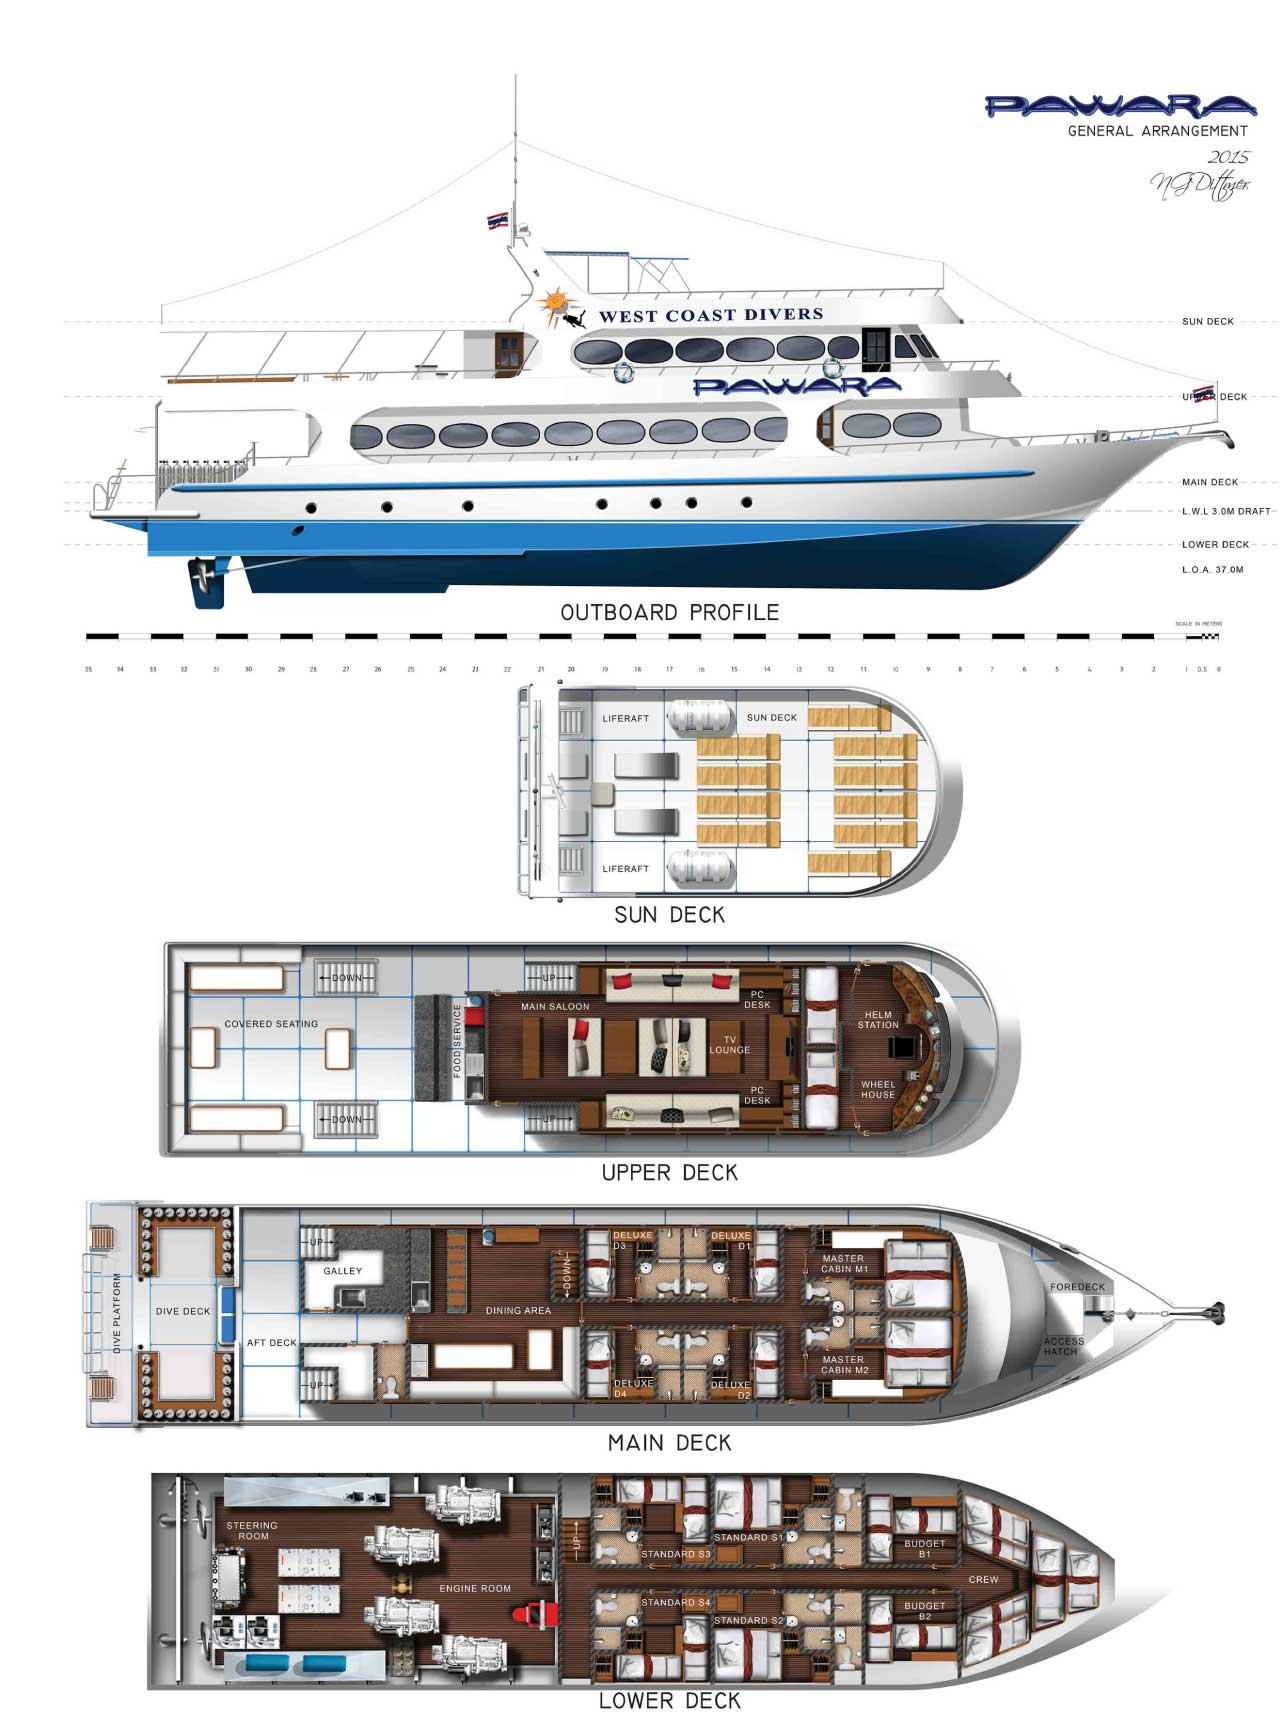 Marine Vessel Pawara's Deck Layout, diving liveaboard to the Similan Islands